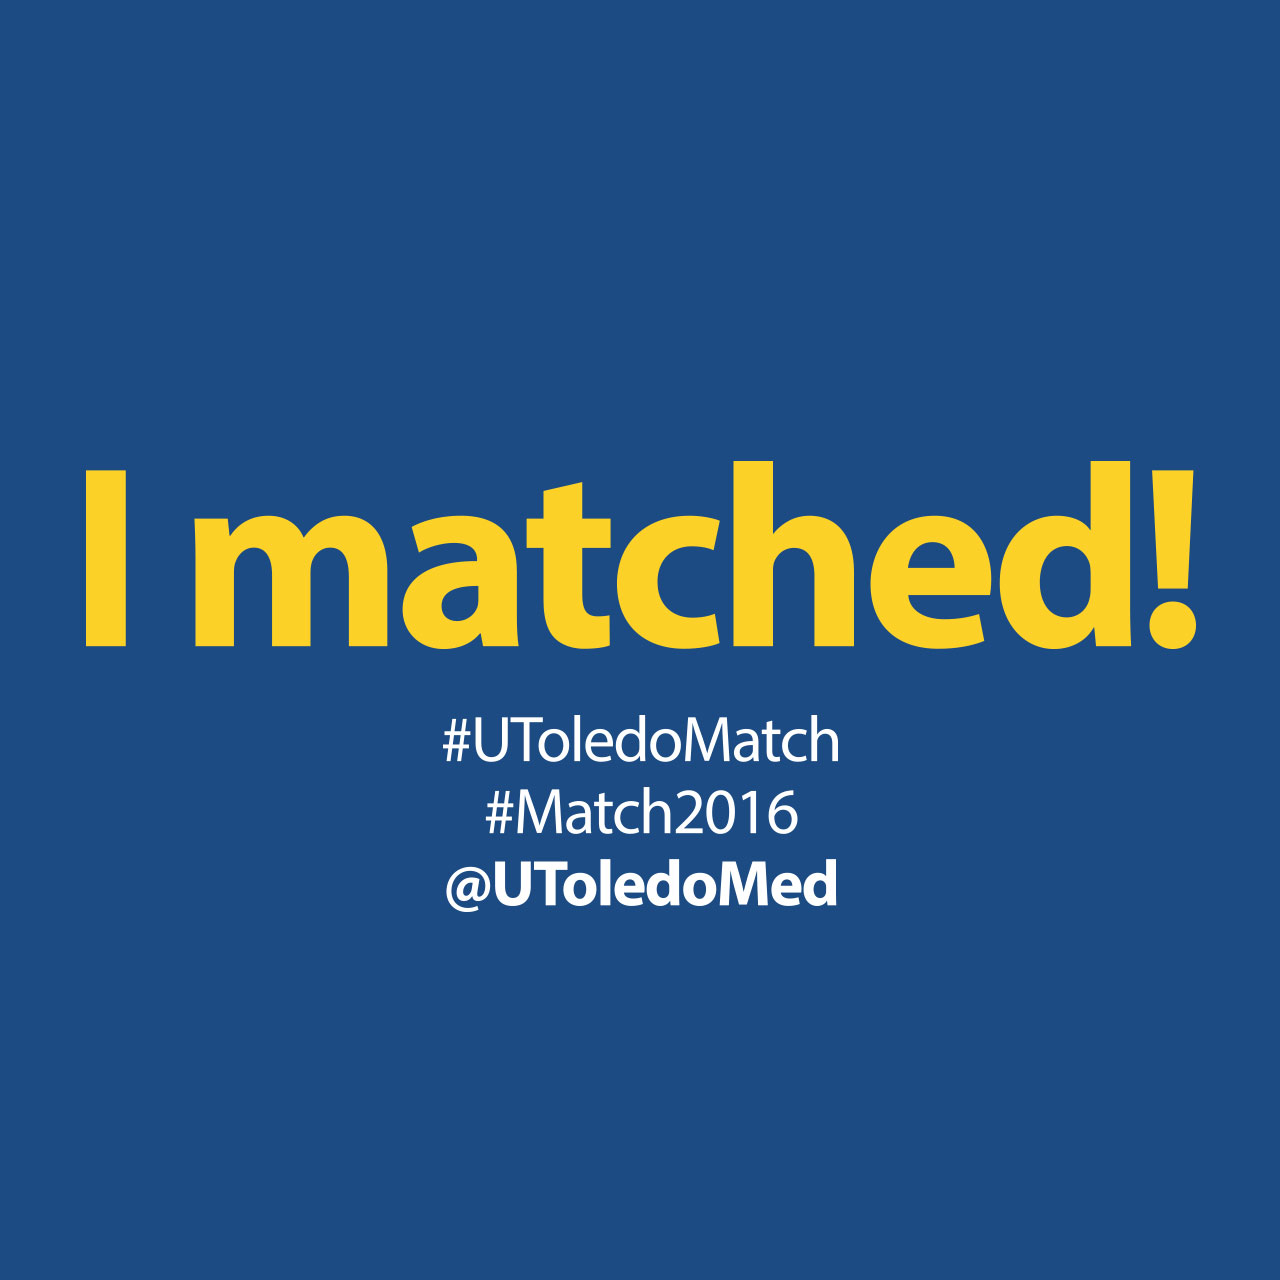 Match Day 2016 social media image